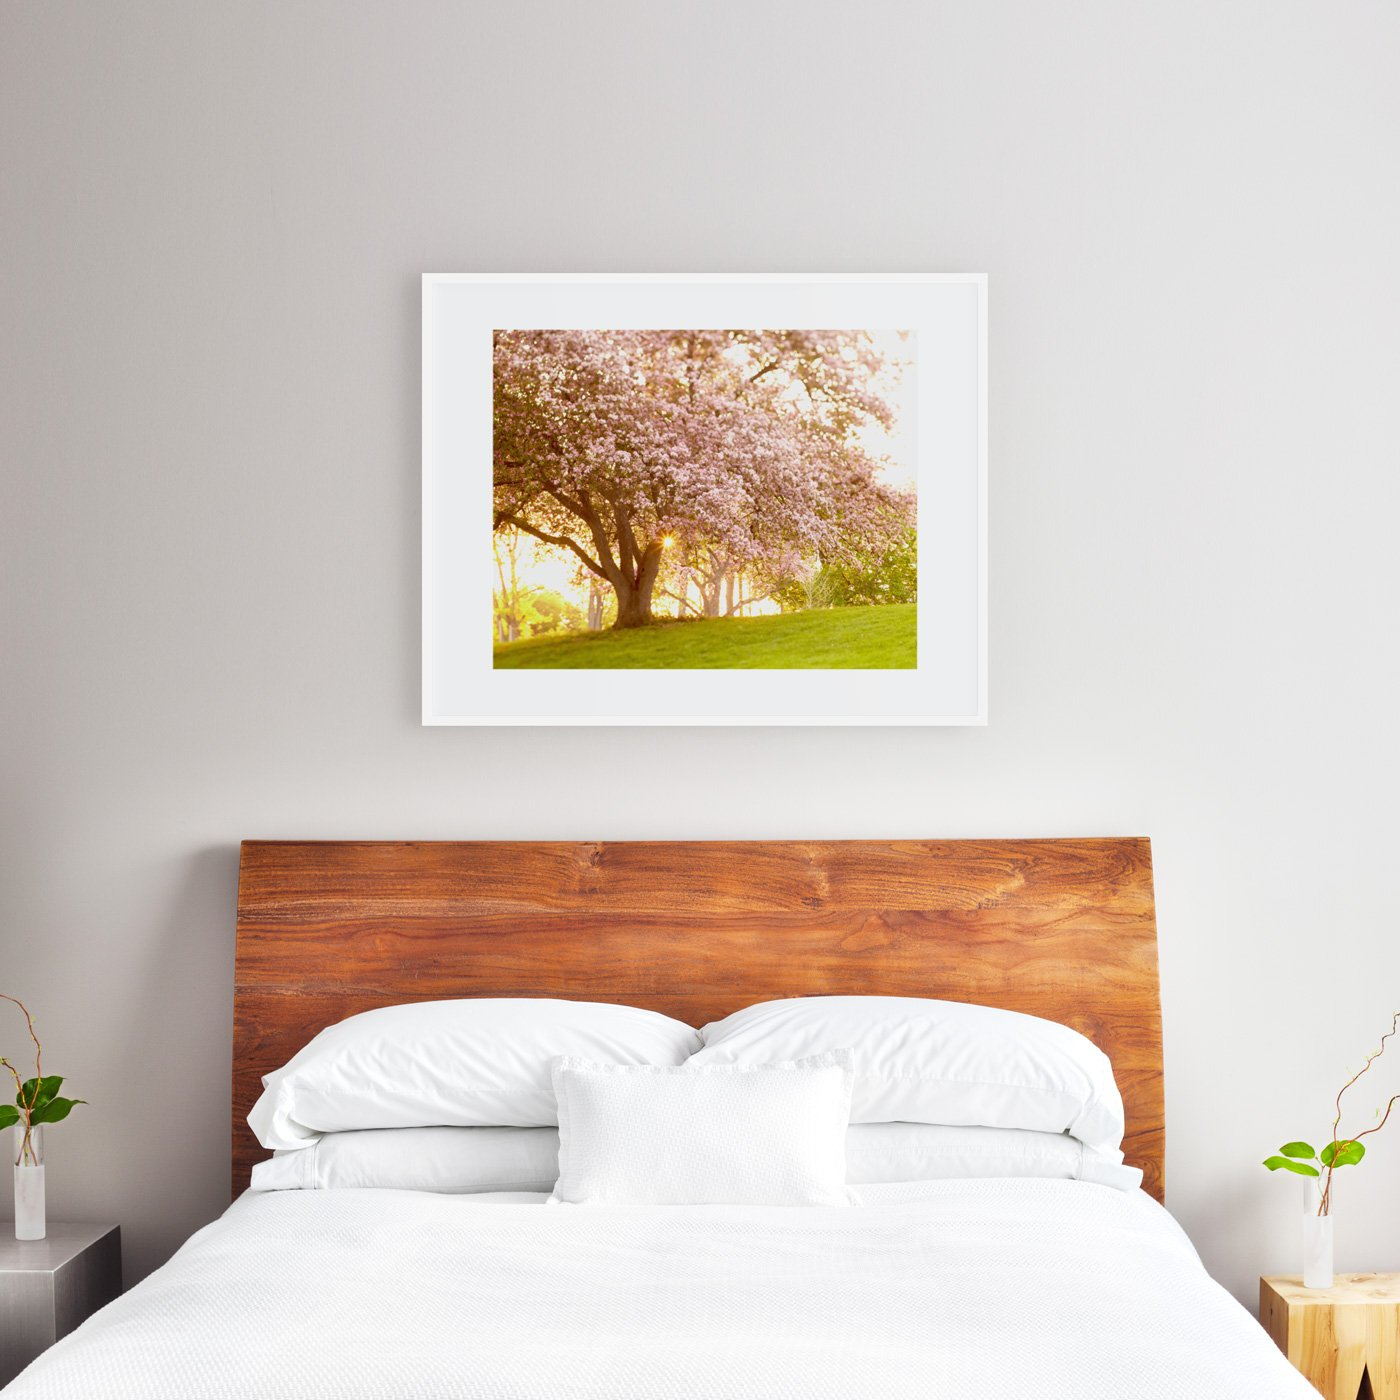 Best Art Size For Above A Queen Bed